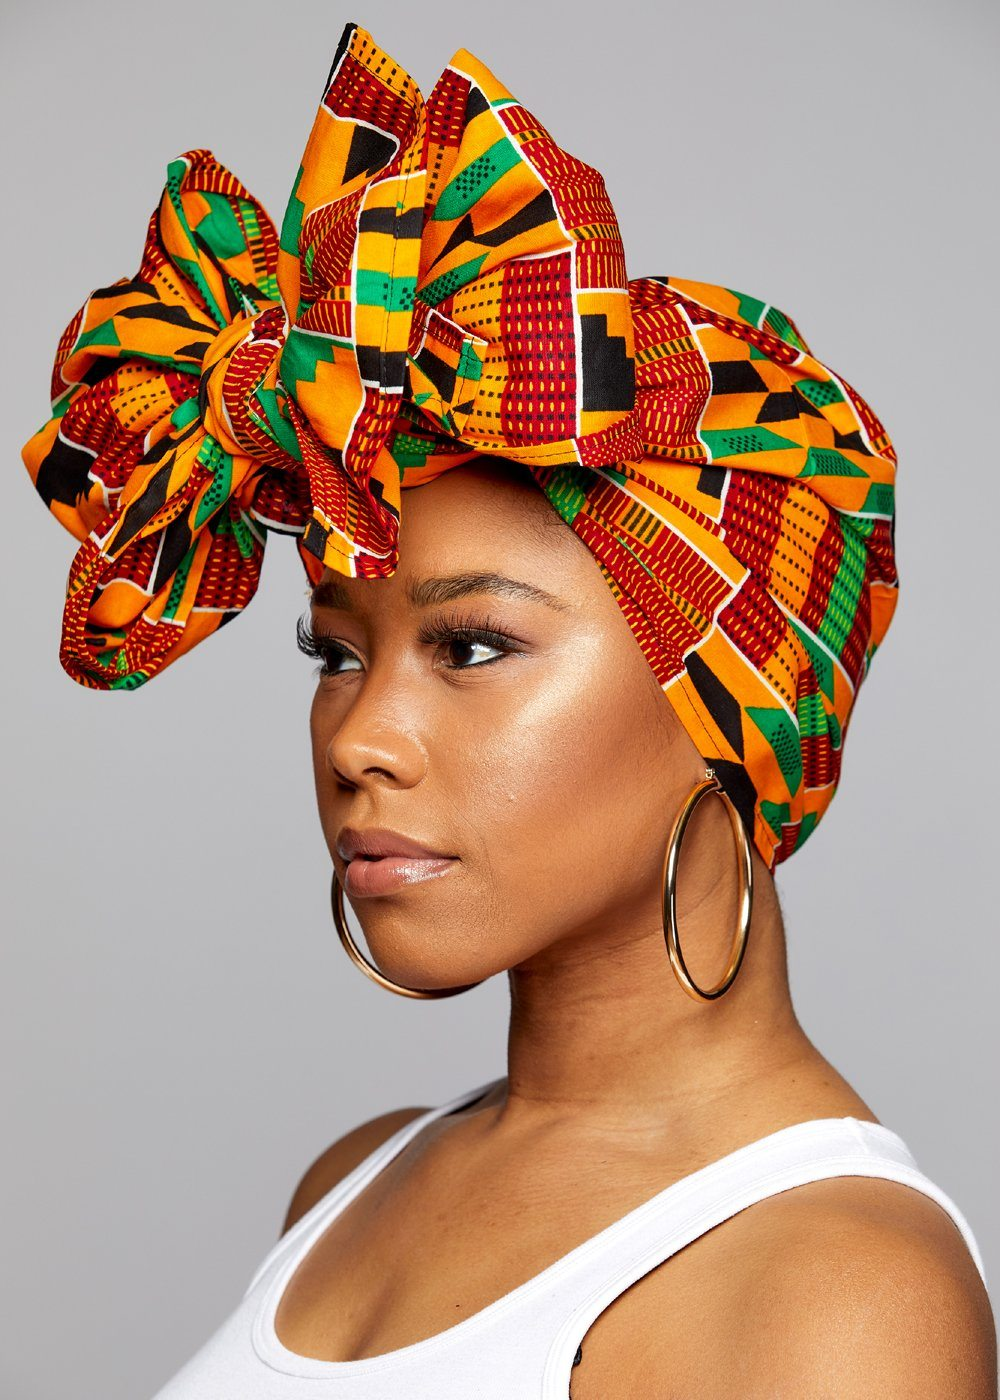 Image result for Head Wrap